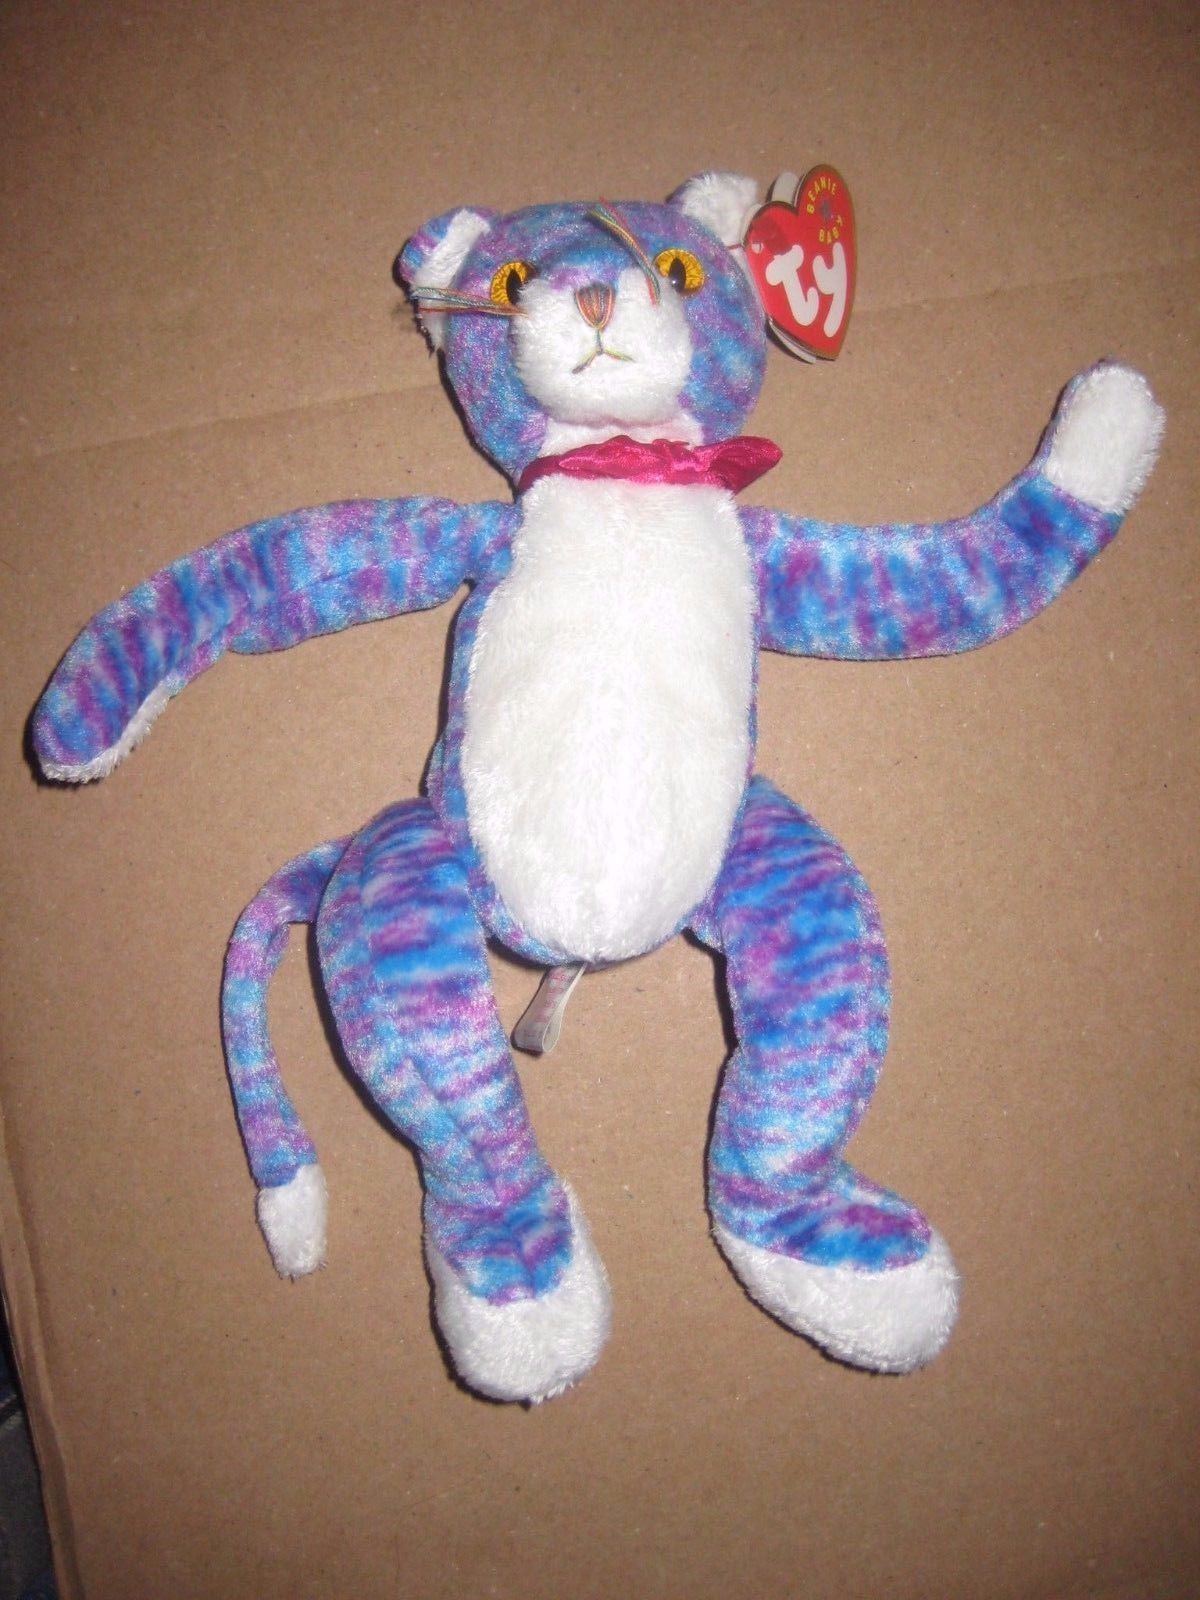 Kooky Ty Beanie Baby Mint With Mint Tags.. and 50 similar items. S l1600 c466ebaa4d07